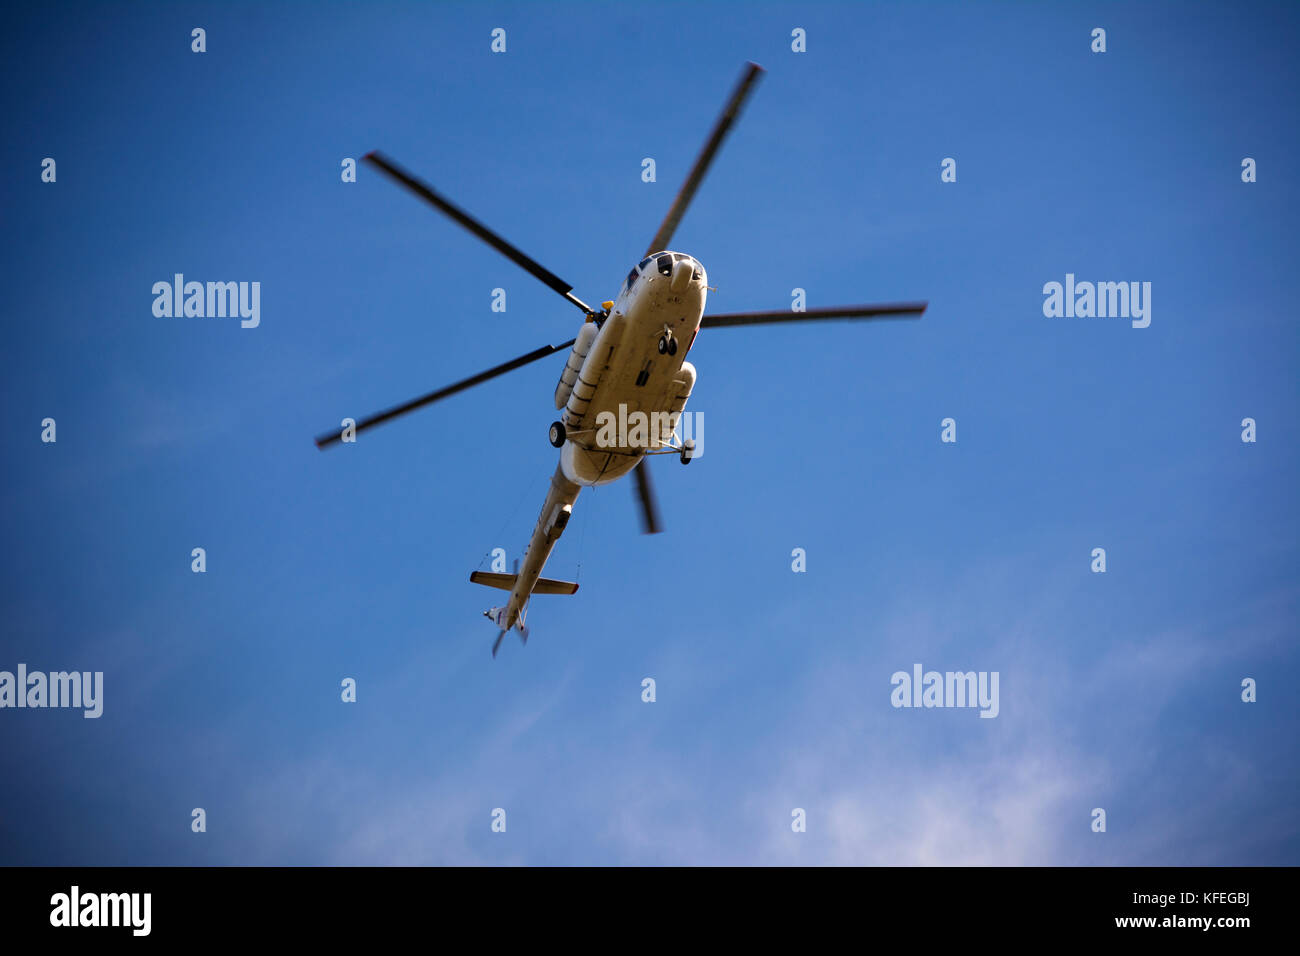 Passenger russian helicopter MI-8 fly in sky. - Stock Image